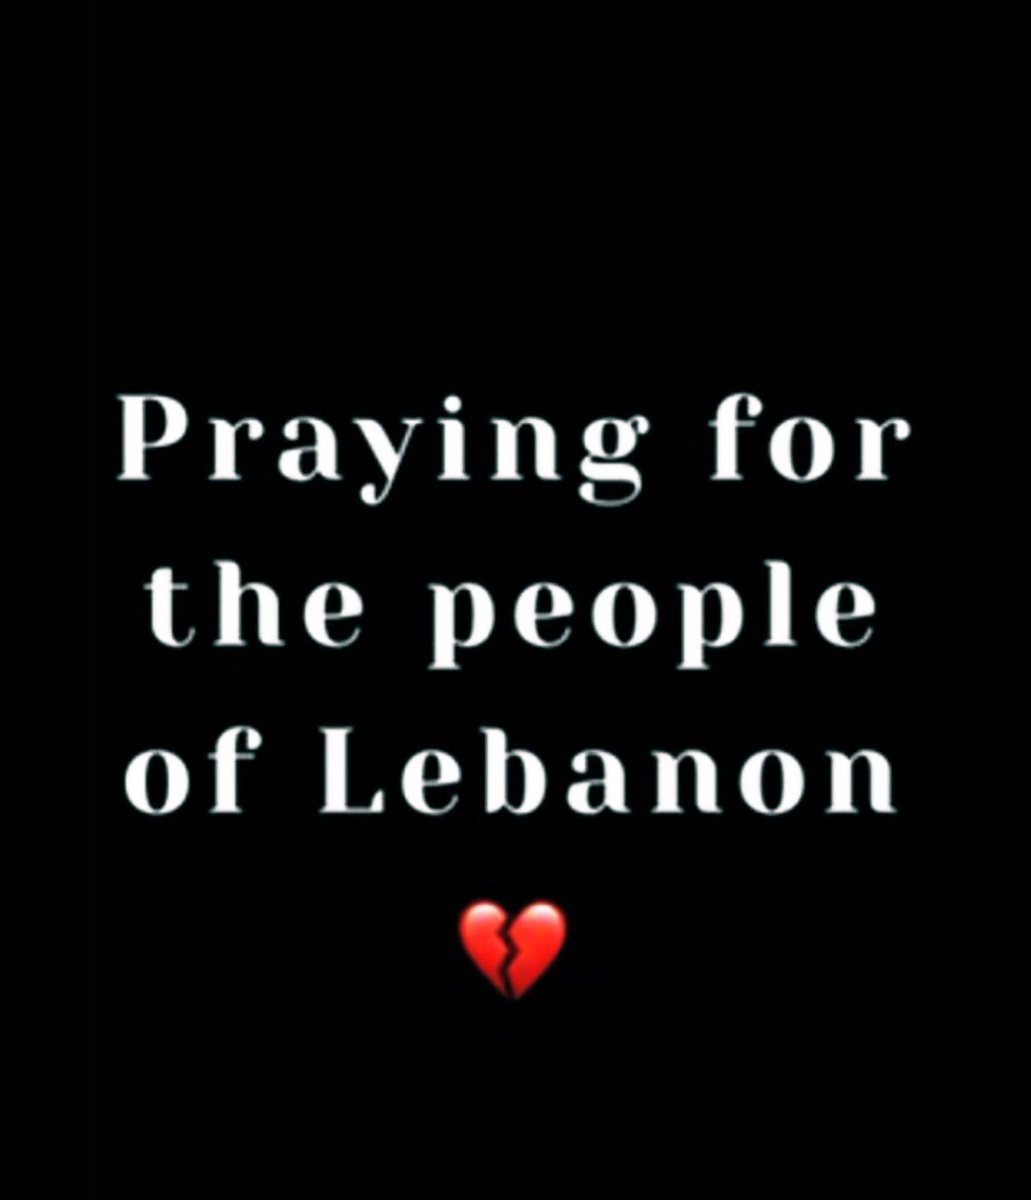 May the Almighty help our brothers and sisters 🤲🏻 https://t.co/UOpCygqEeC